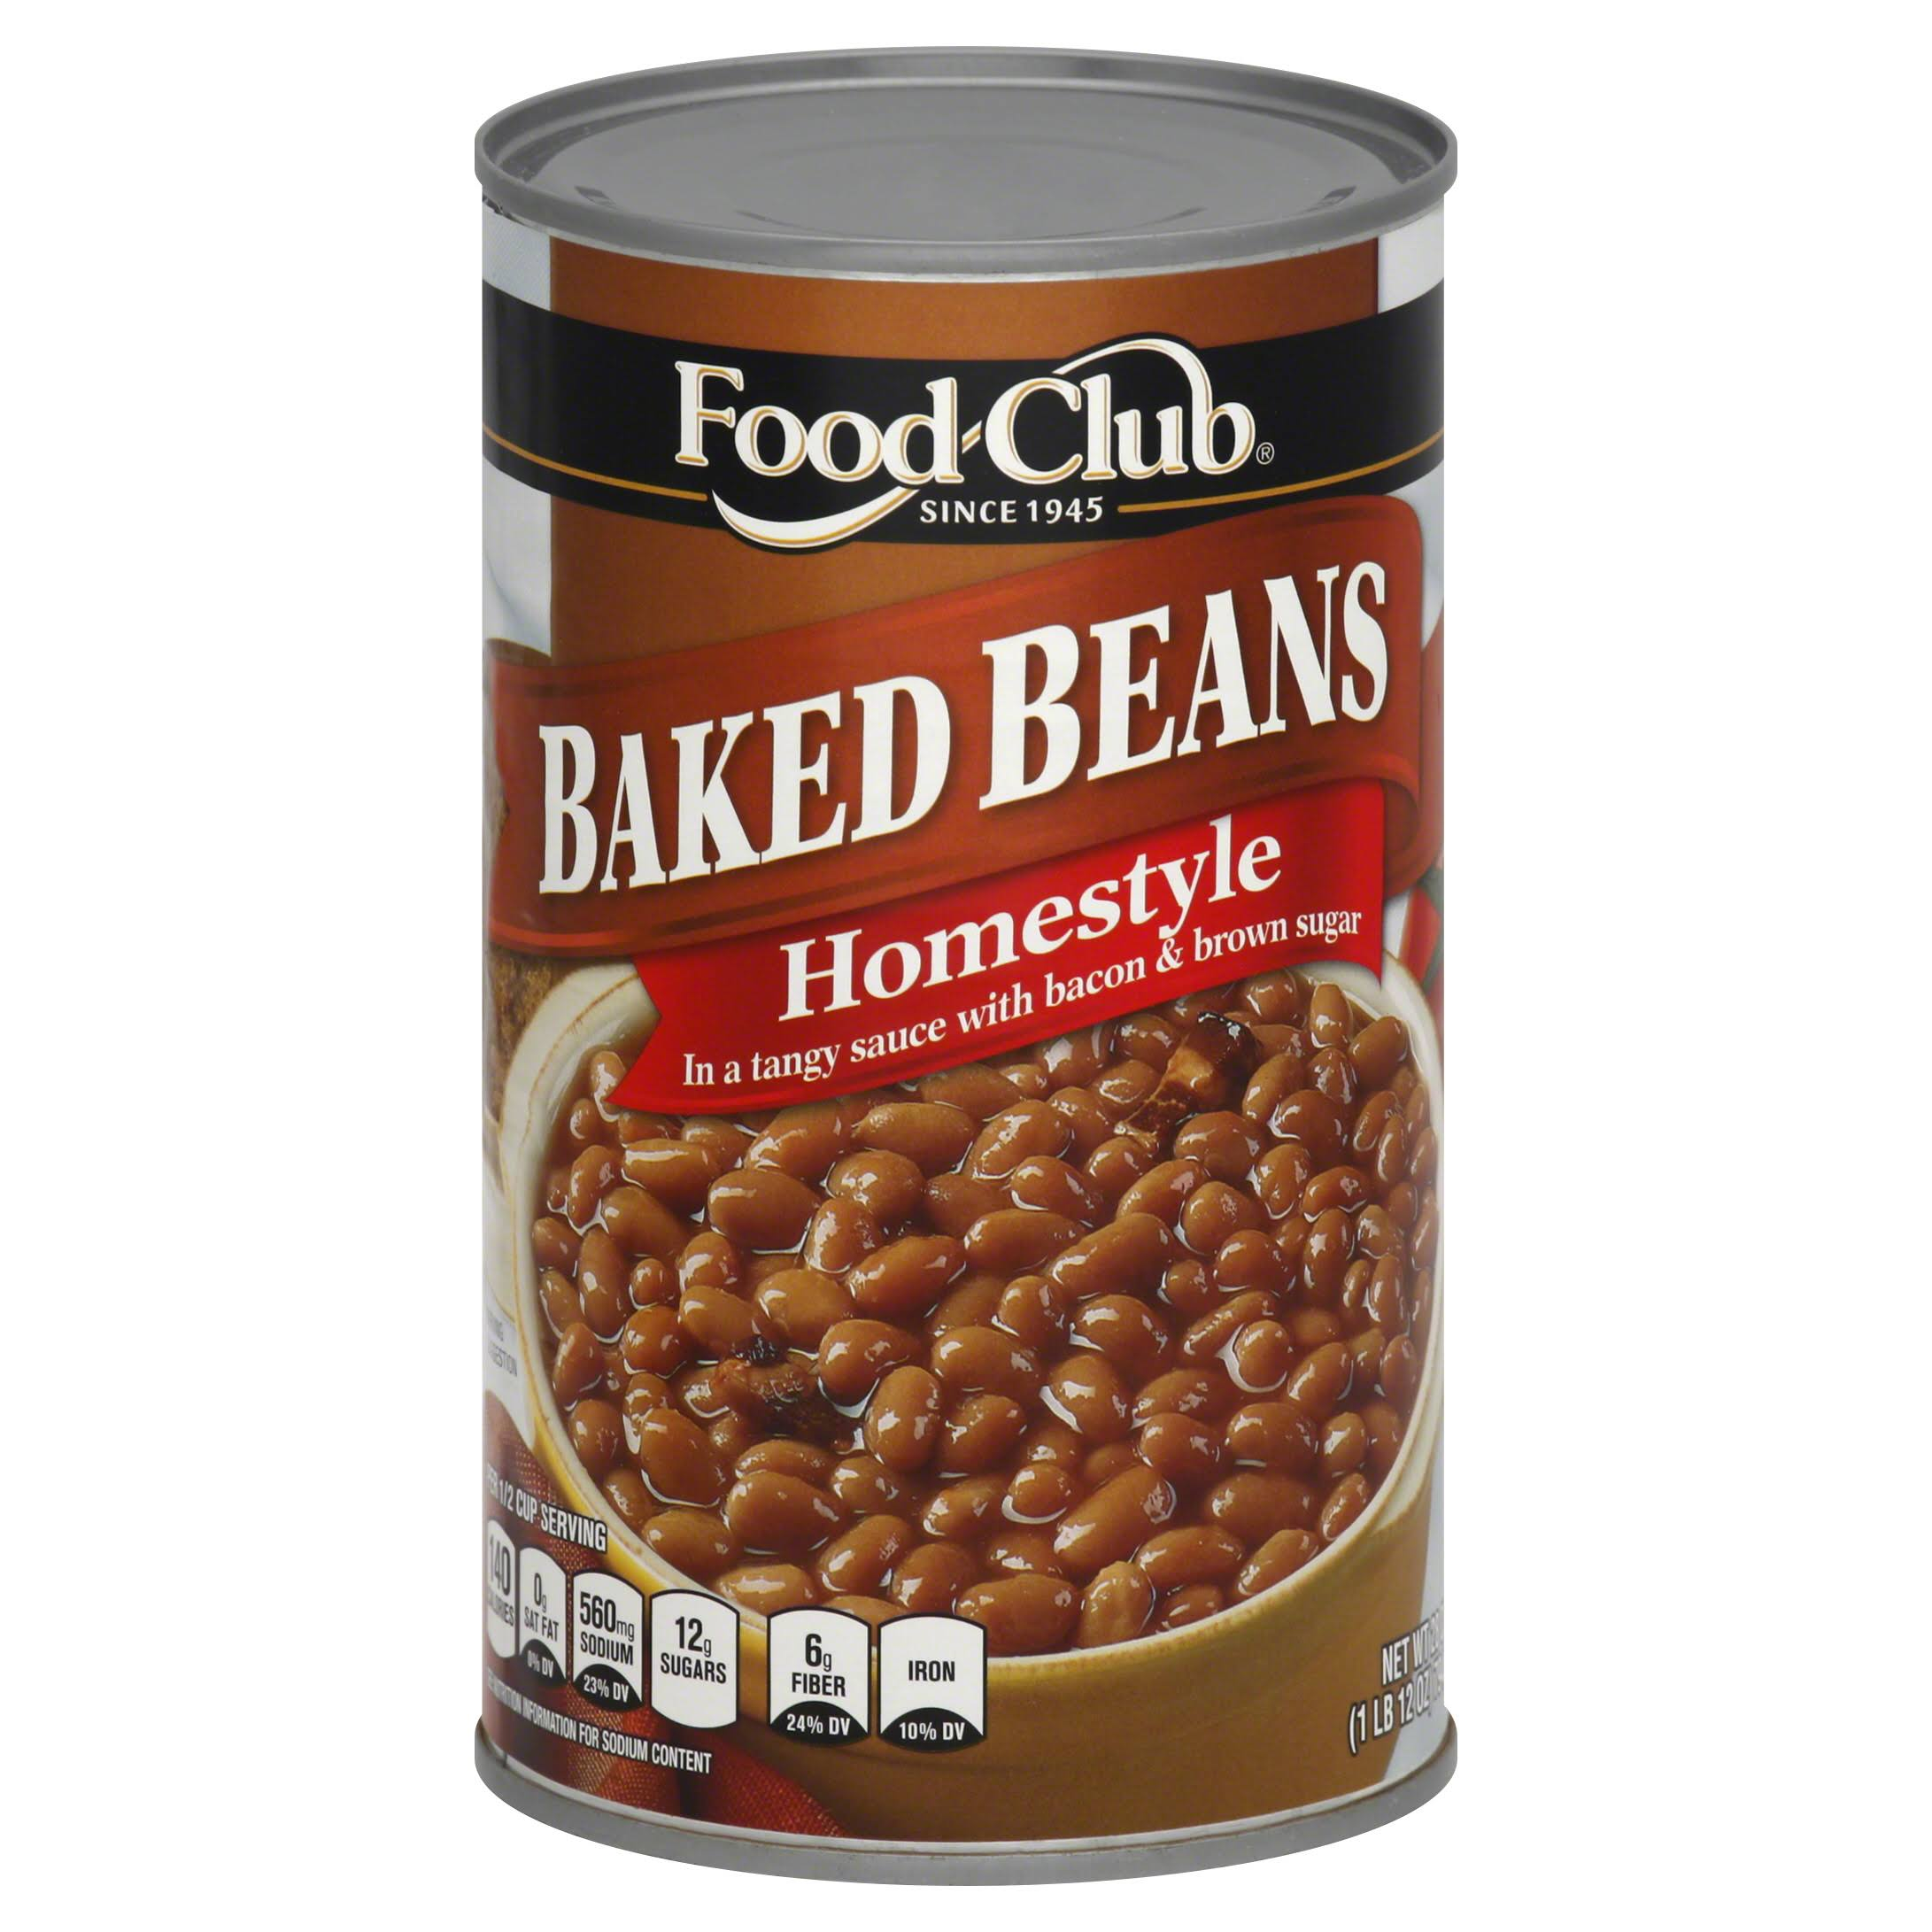 Food Club Baked Beans, Homestyle - 28 oz